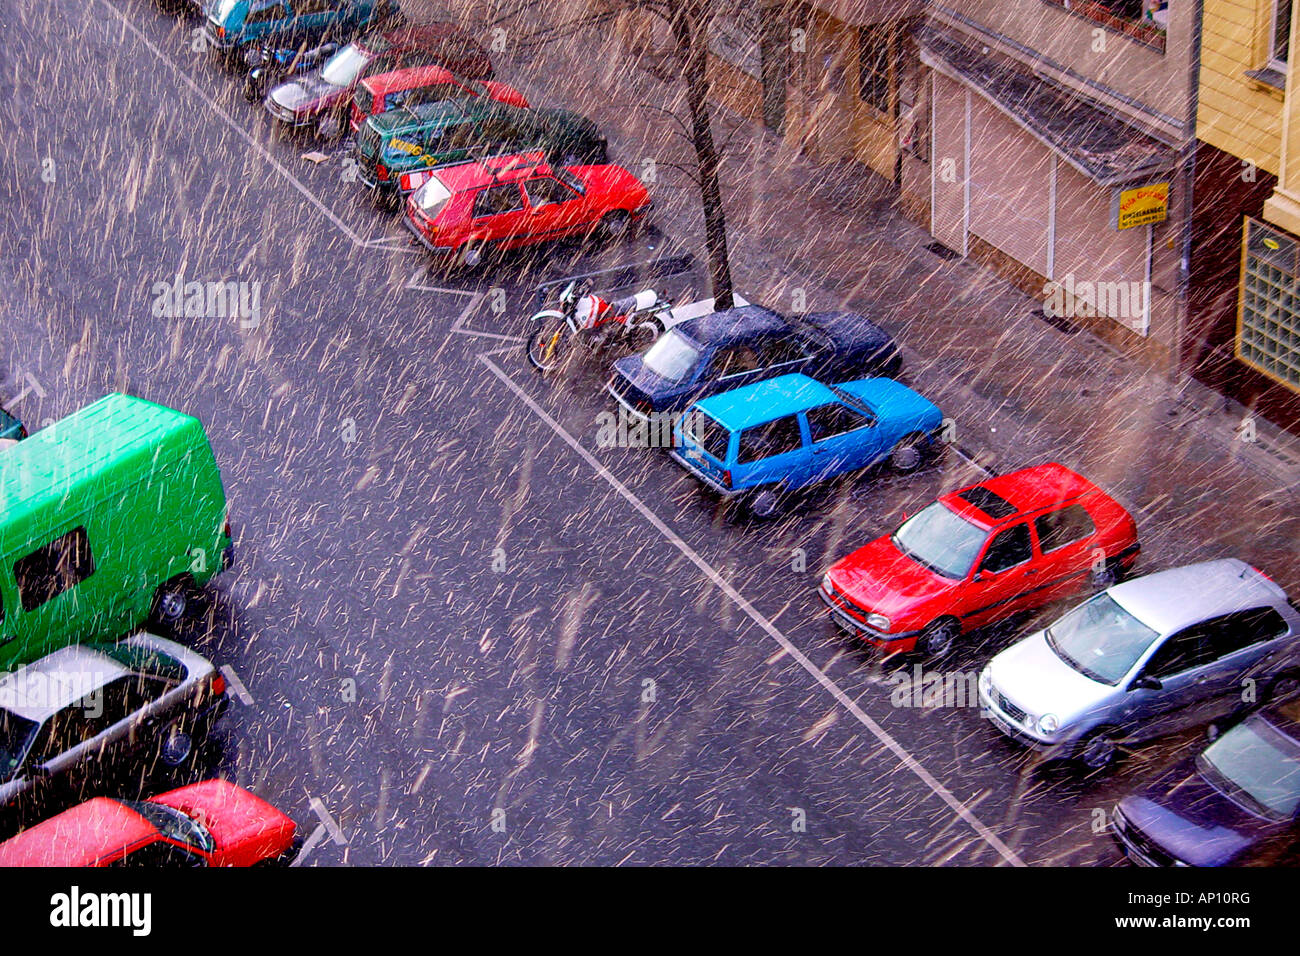 Snowfall in Berlin with parked cars, Neukoelln, Berlin, Germany - Stock Image